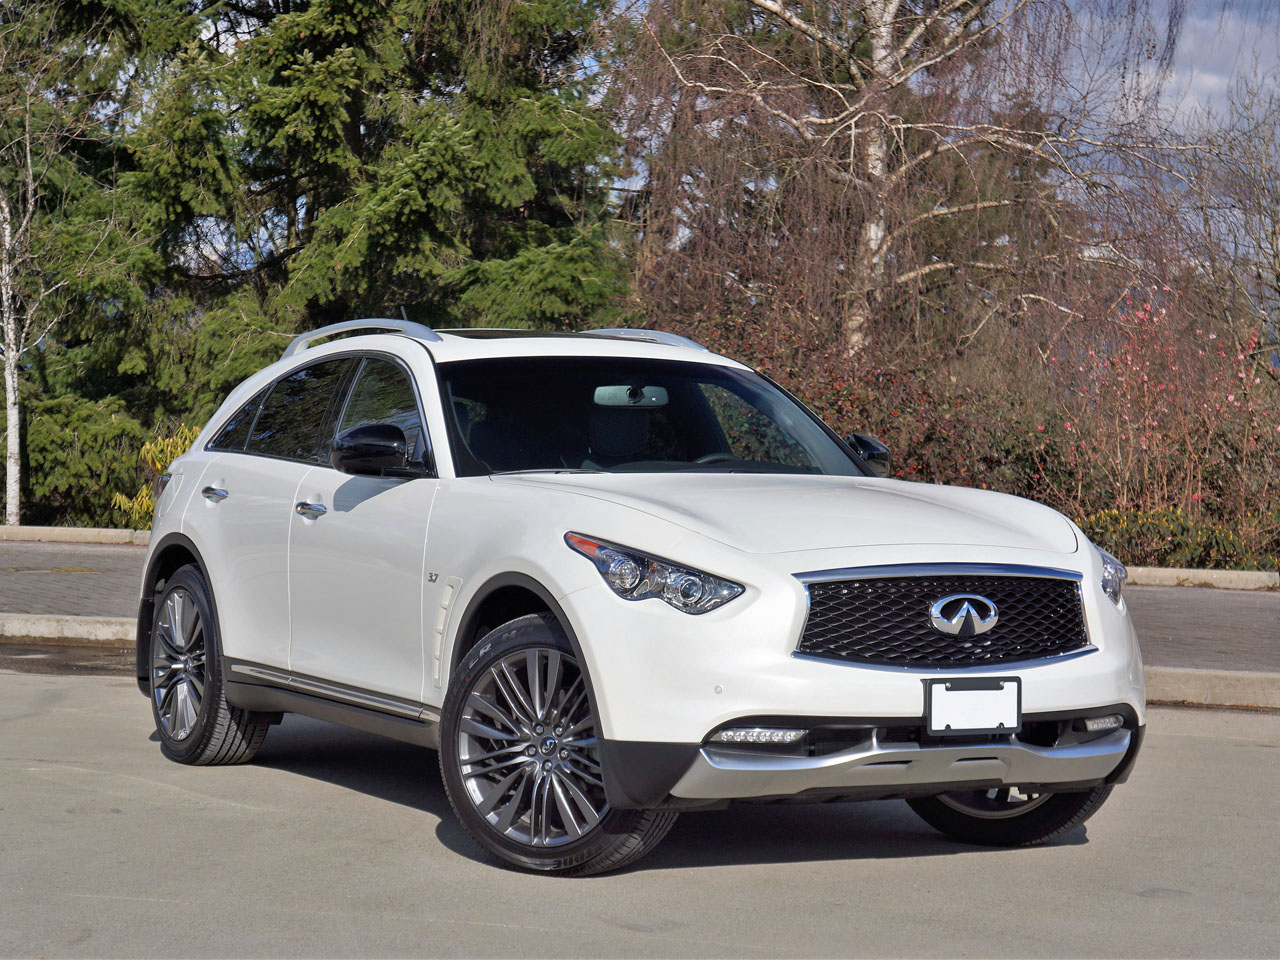 2017 infiniti qx70 limited road test carcostcanada. Black Bedroom Furniture Sets. Home Design Ideas